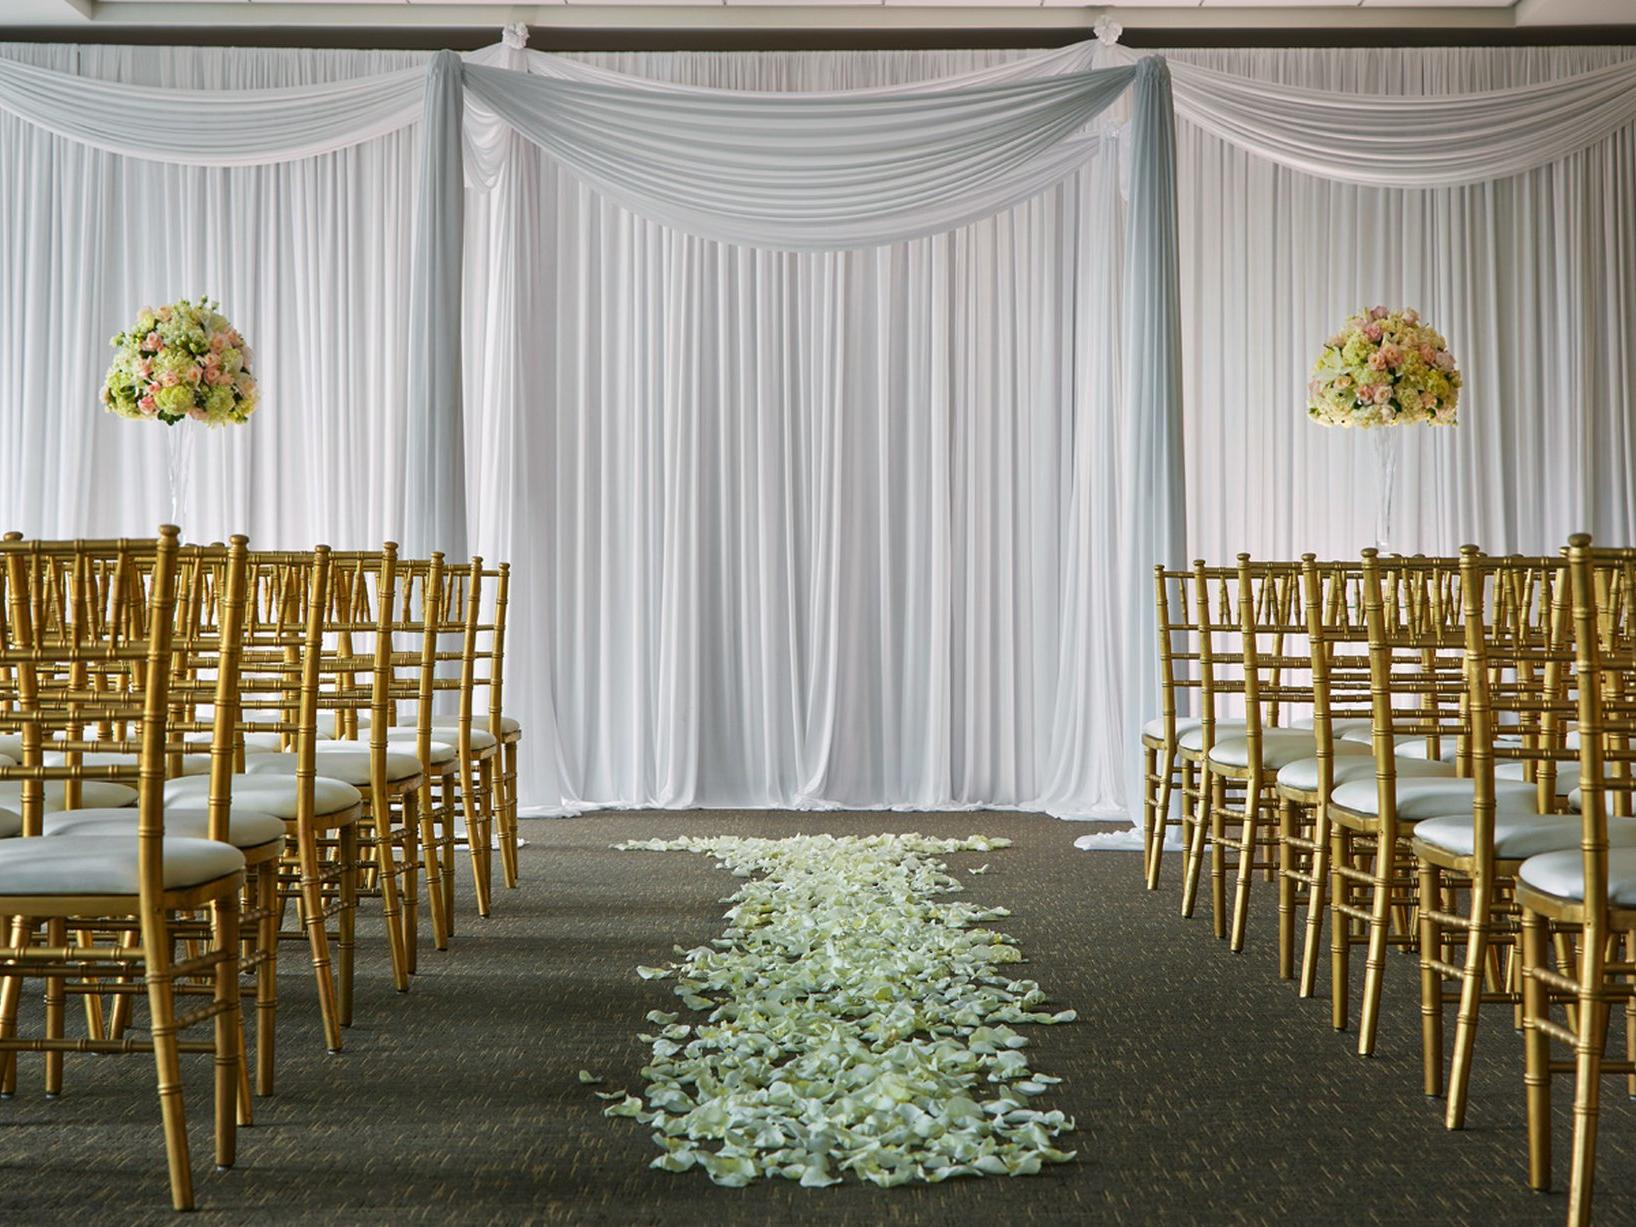 chairs and flowers in a wedding ceremony